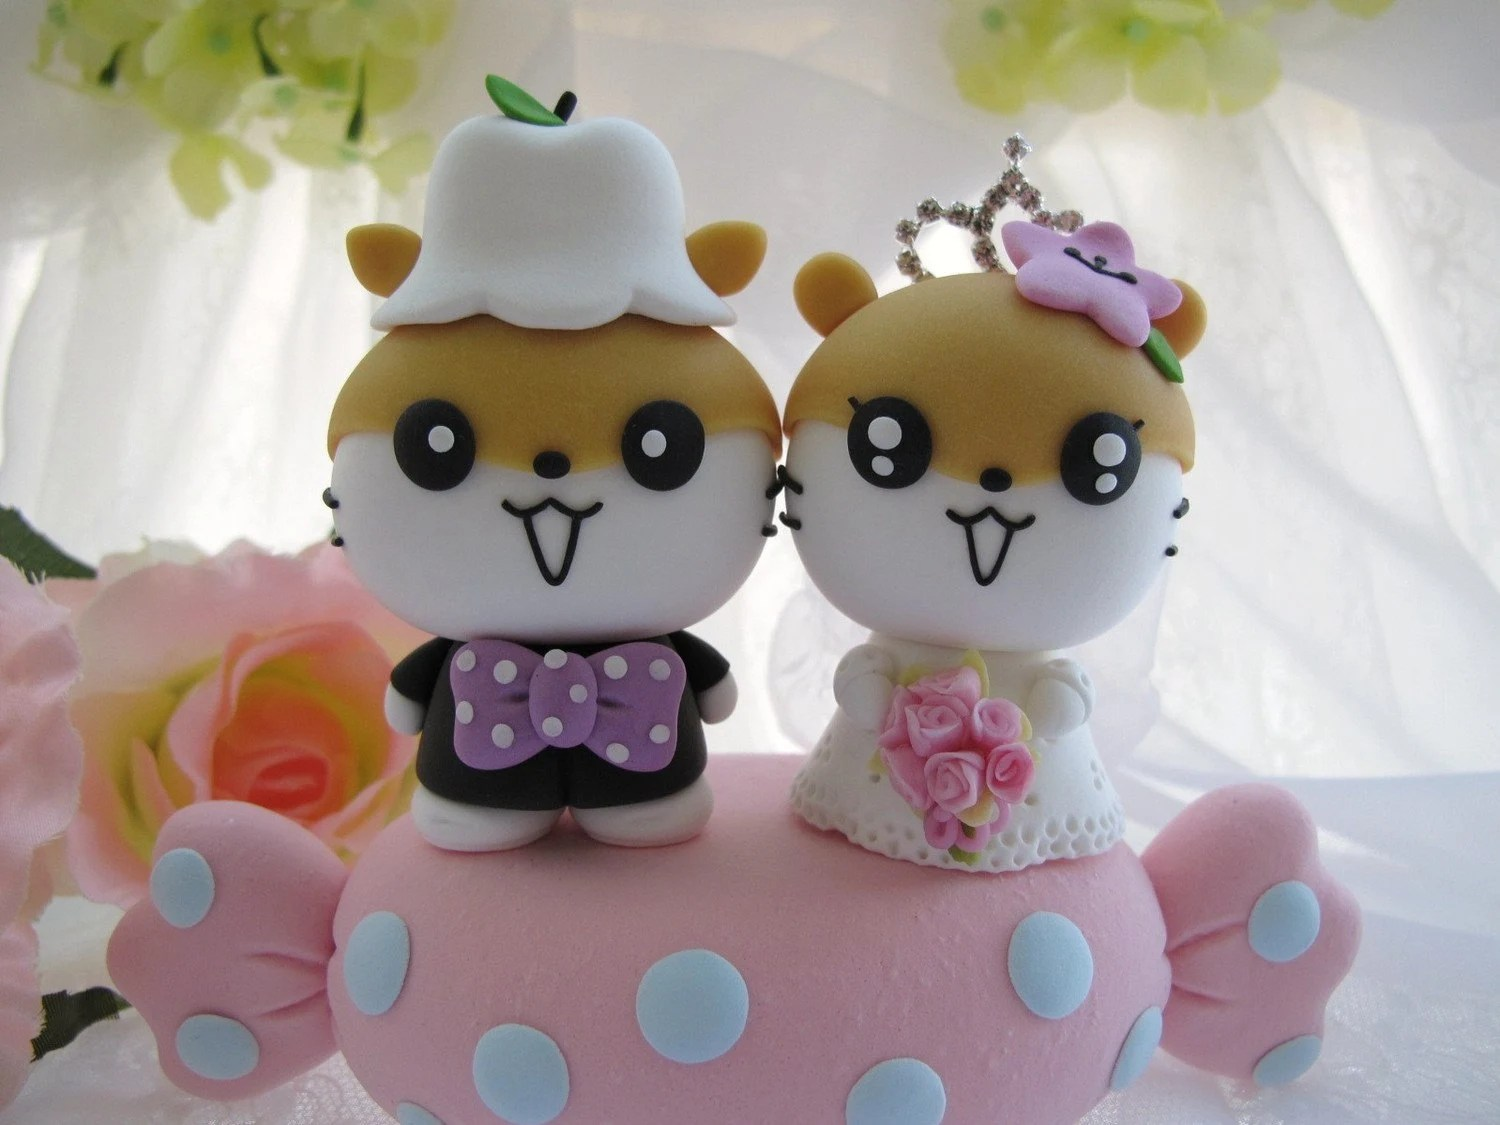 LOVE ANGELS Wedding Cake Topper - lovely and cute hamster with sweet candy ,SWAROVSKI and crystals crown